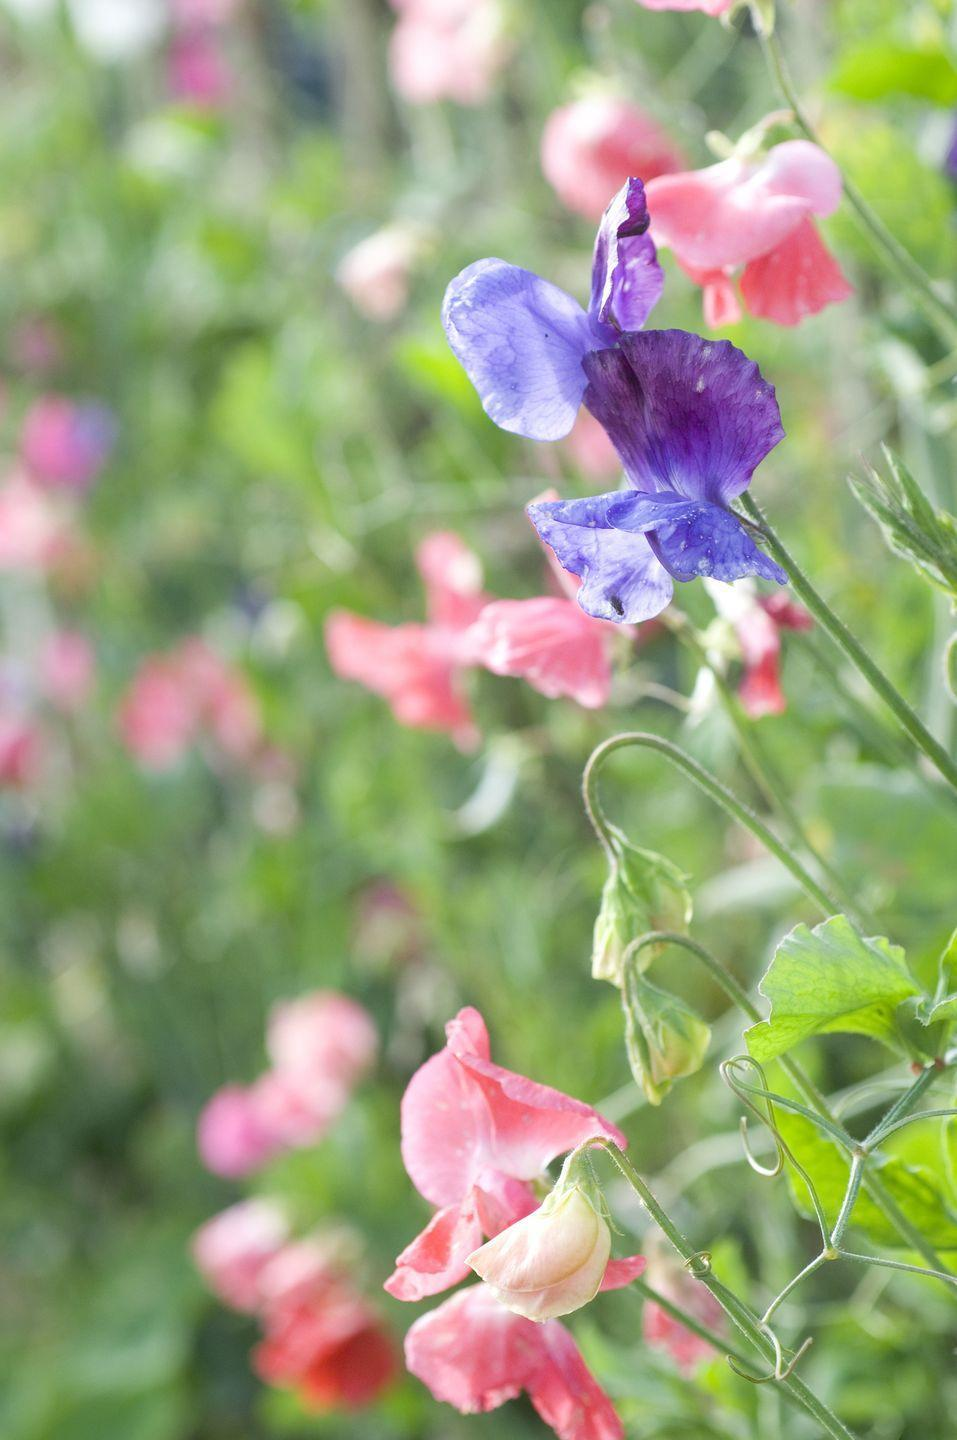 """<p>The delicate form and delightful fragrance of sweet peas are reminiscent of quaint English gardens. Most types are climbers, so they'll need a trellis or fence to support them. They grow well from seed, but you'll want to plant them early indoors to give them a head start. Otherwise, hot weather (which they despise!) will arrive before they have a chance to bloom. They like full sun best.</p><p><a class=""""link rapid-noclick-resp"""" href=""""https://www.amazon.com/Davids-Garden-Seeds-Flower-Pollinated/dp/B07C587P45/?tag=syn-yahoo-20&ascsubtag=%5Bartid%7C2164.g.35511393%5Bsrc%7Cyahoo-us"""" rel=""""nofollow noopener"""" target=""""_blank"""" data-ylk=""""slk:SHOP SWEET PEAS"""">SHOP SWEET PEAS</a></p>"""